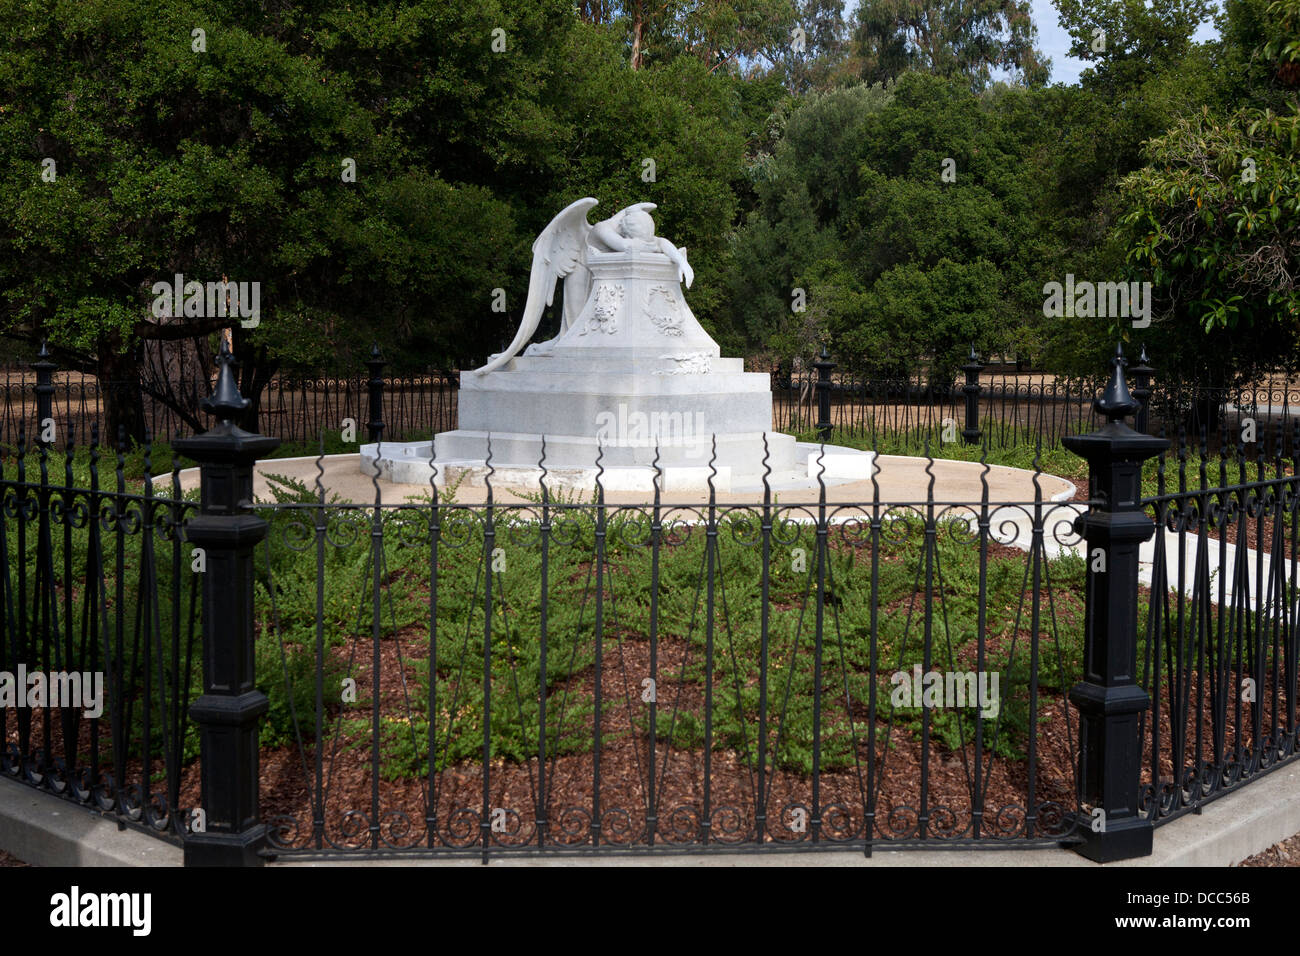 Angel Of Grief Statue, Stanford, California, United States Of America